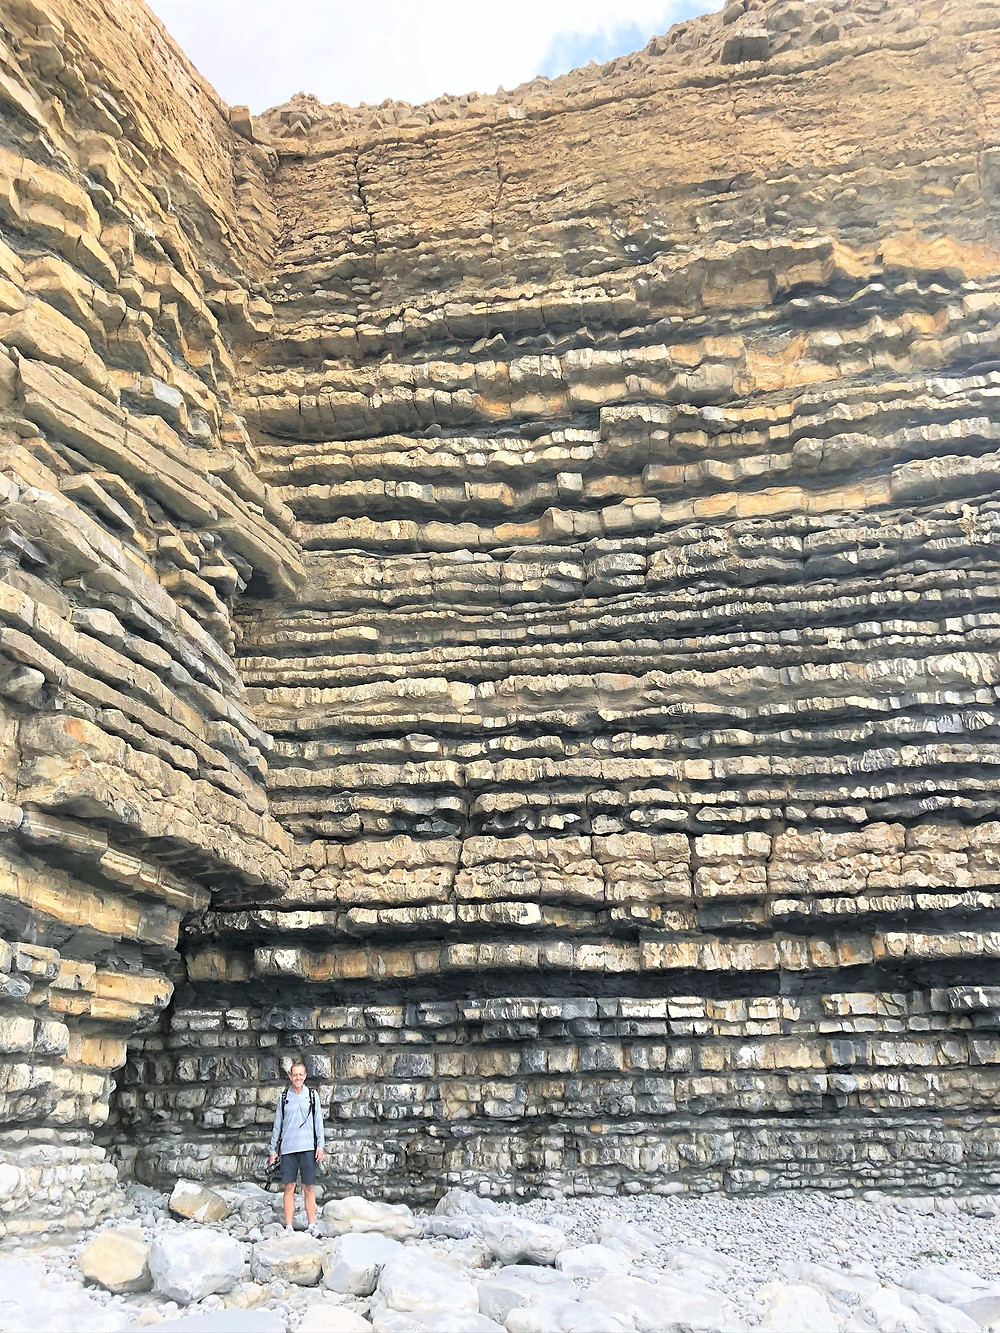 Tall, vertical cliffs of almost perfectly straight thin-layered  limestone and shale at Dunraven Beach along the Glamorgan Heritage Coastal Trail in Wales